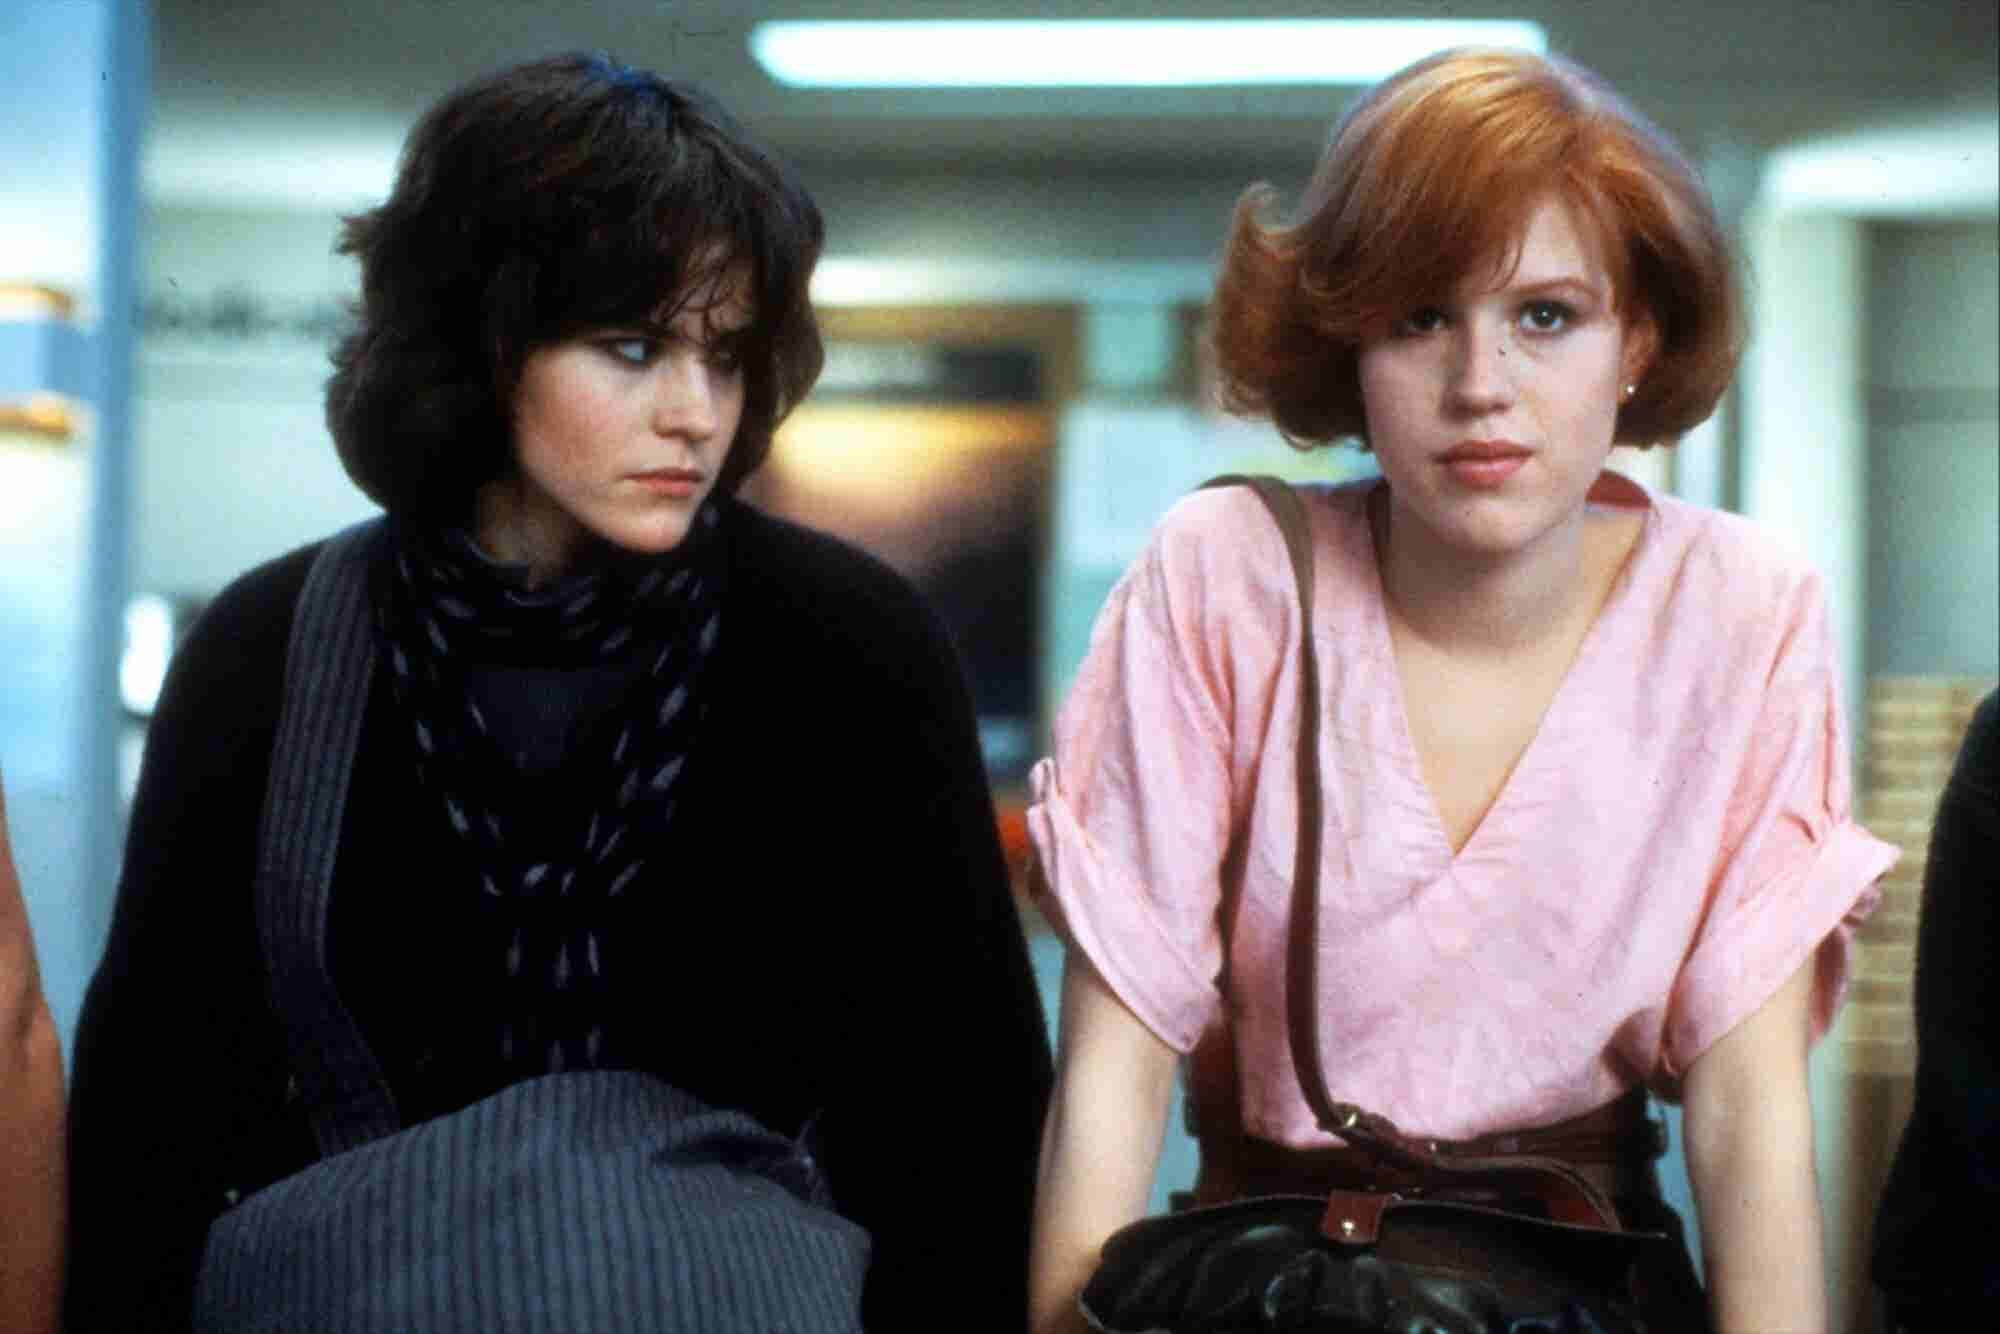 Inspiring Quotes From '80s and '90s Movies